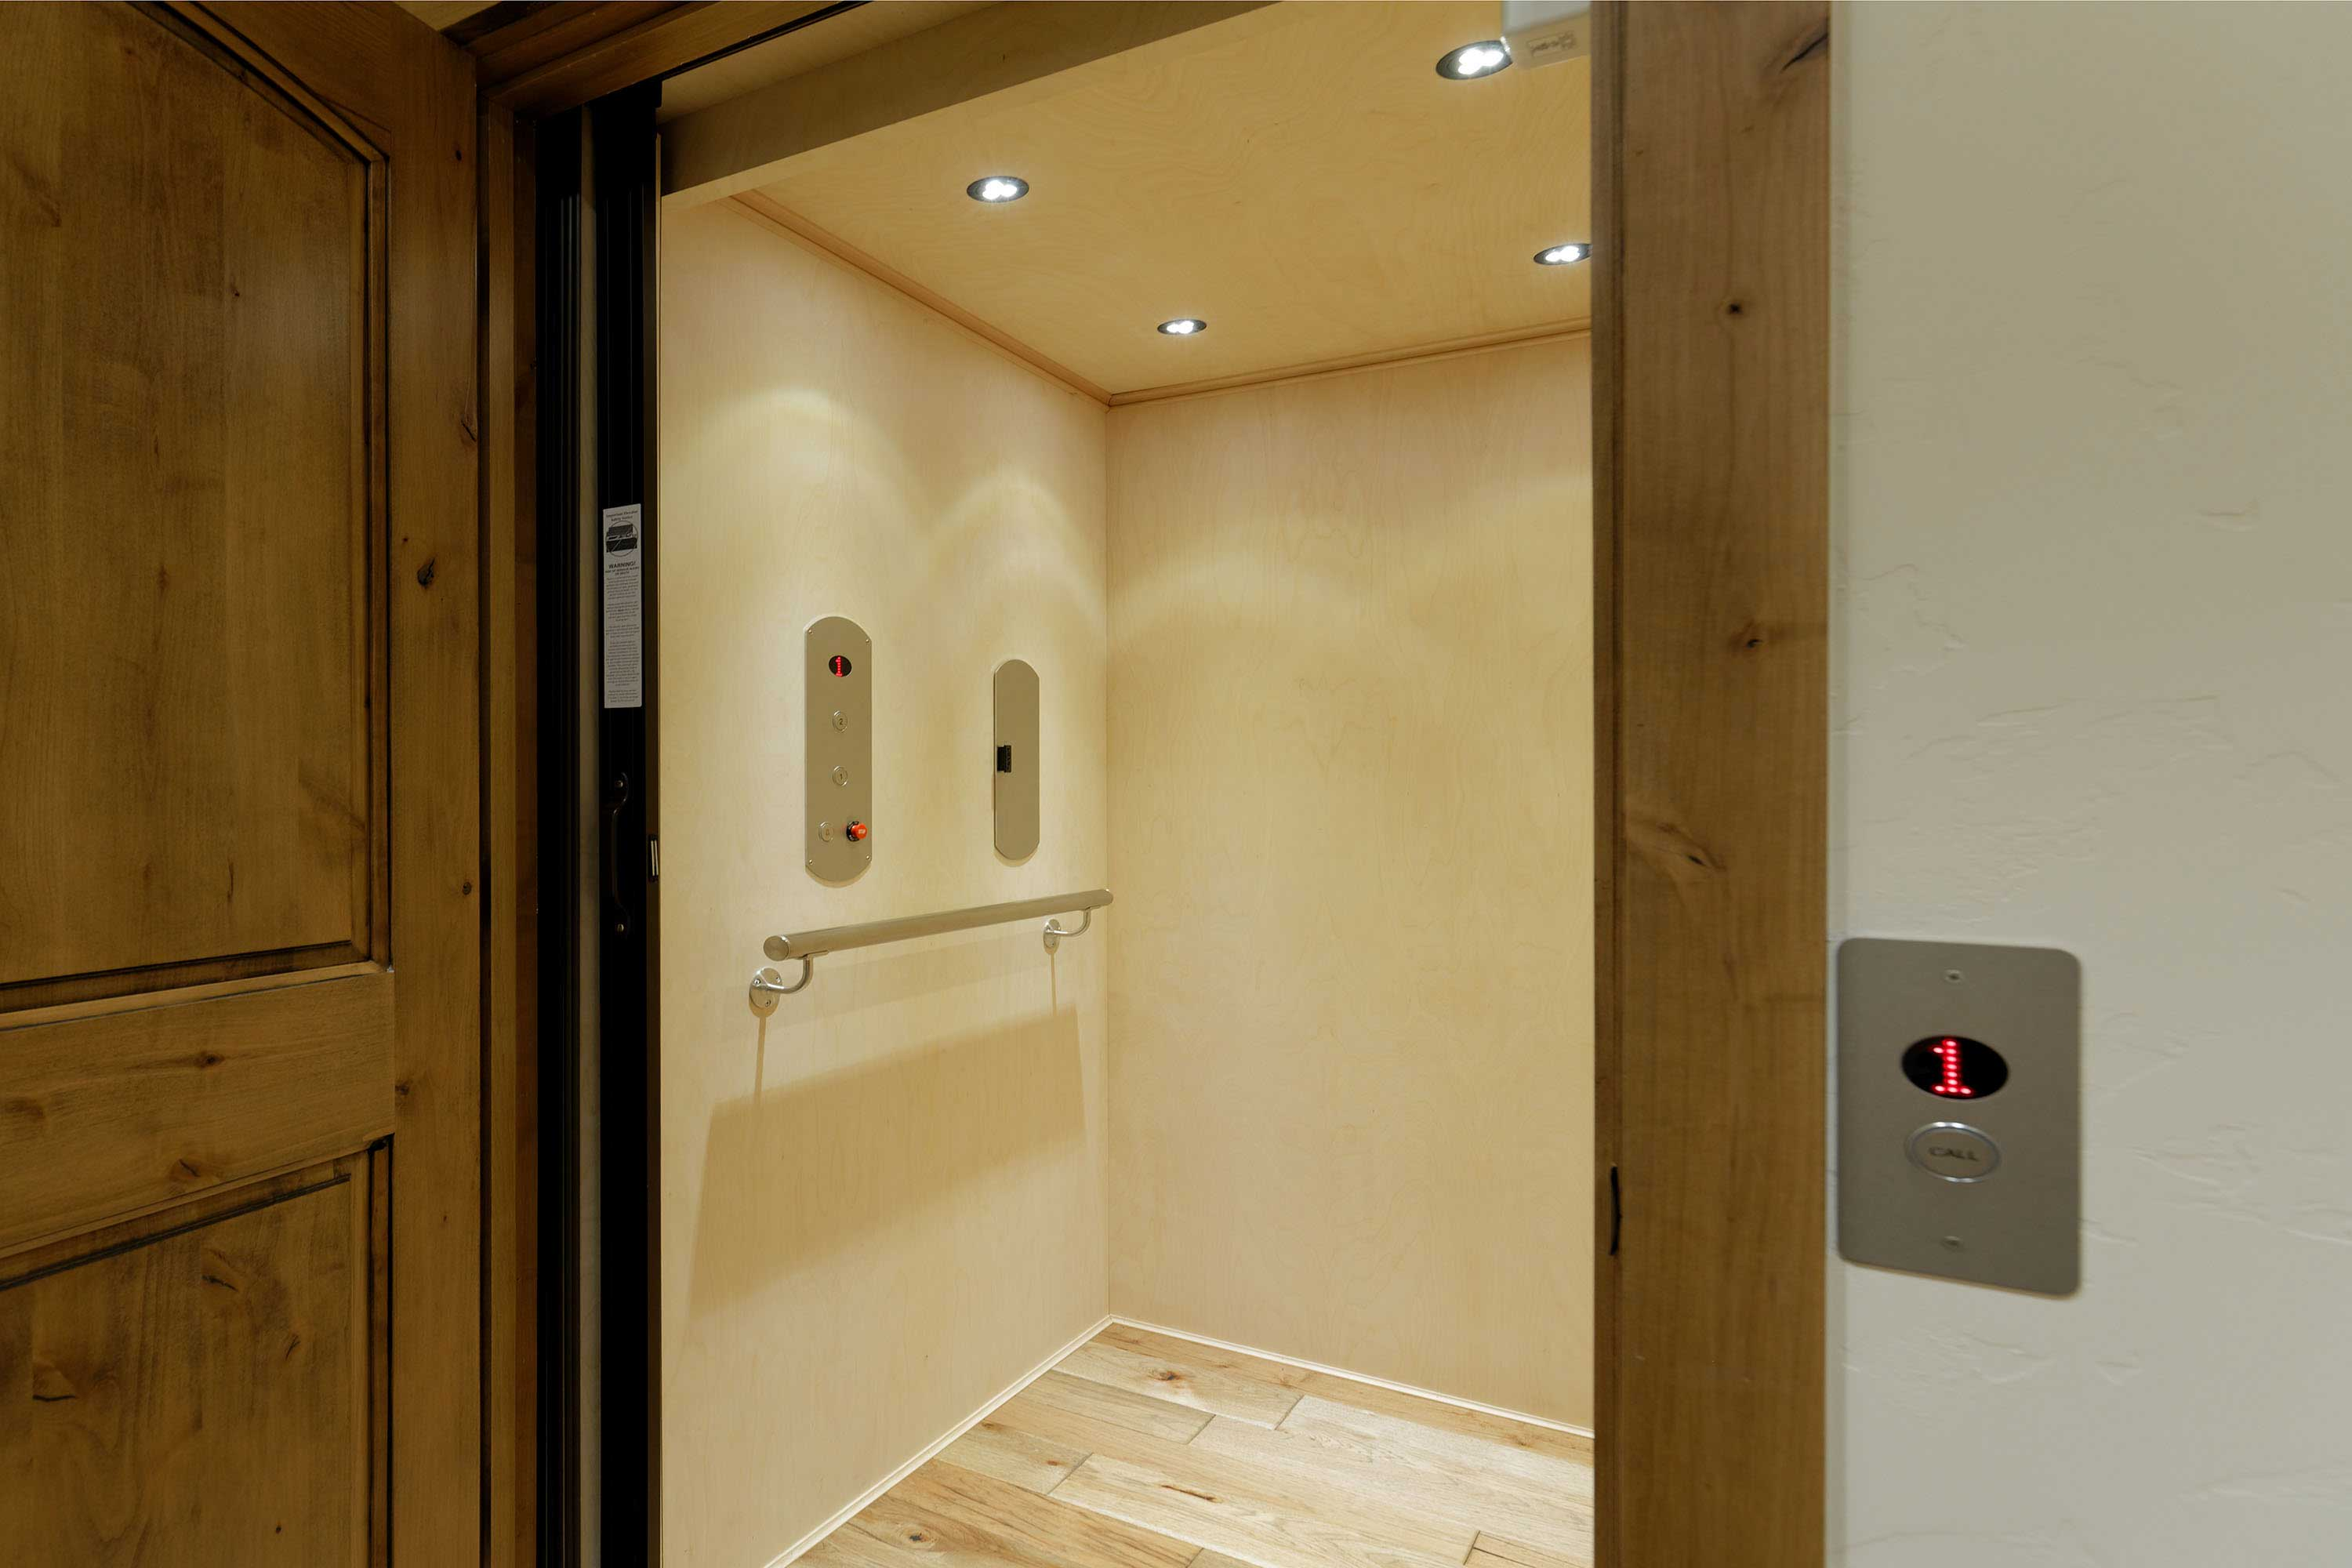 Thanks to the elevator, this home is wheelchair friendly.